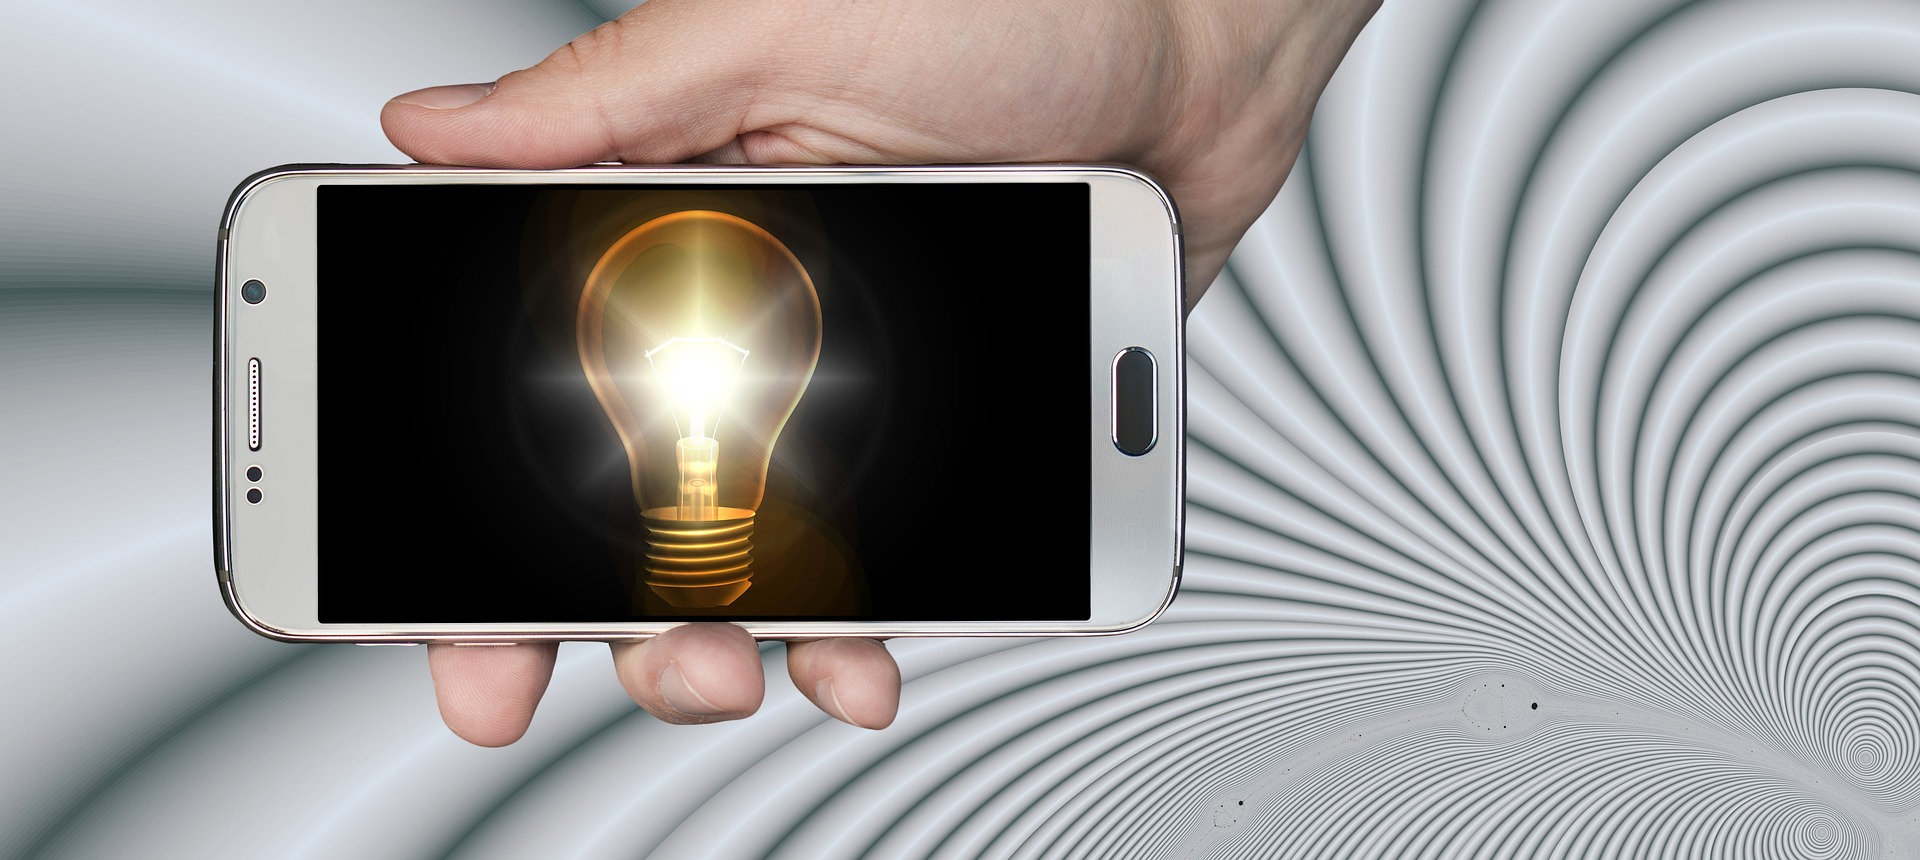 Could a Mobile App Improve How You Work?